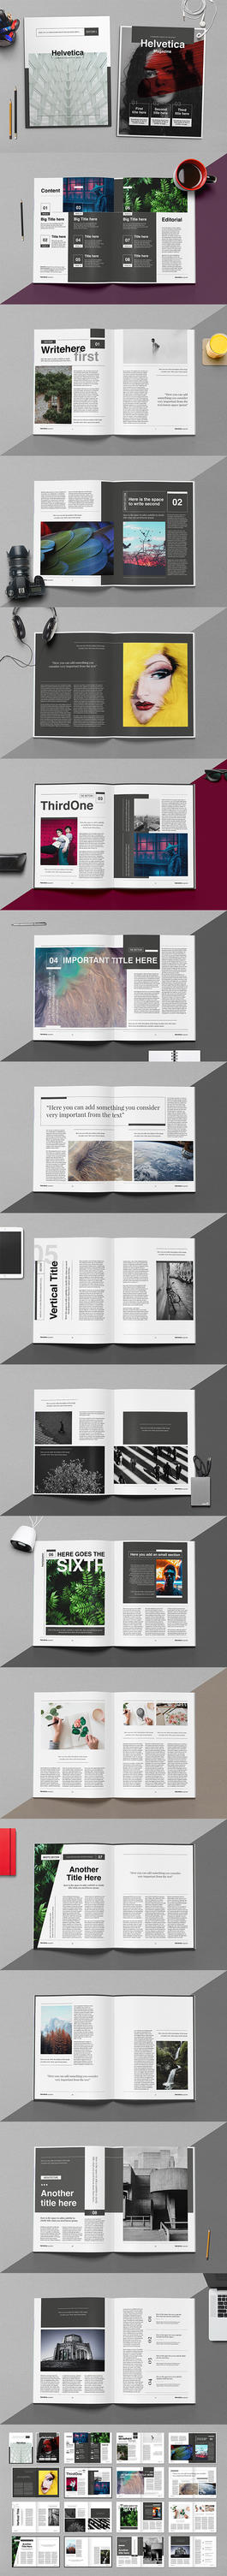 Helvetica Magazine Indesign Template by luuqas